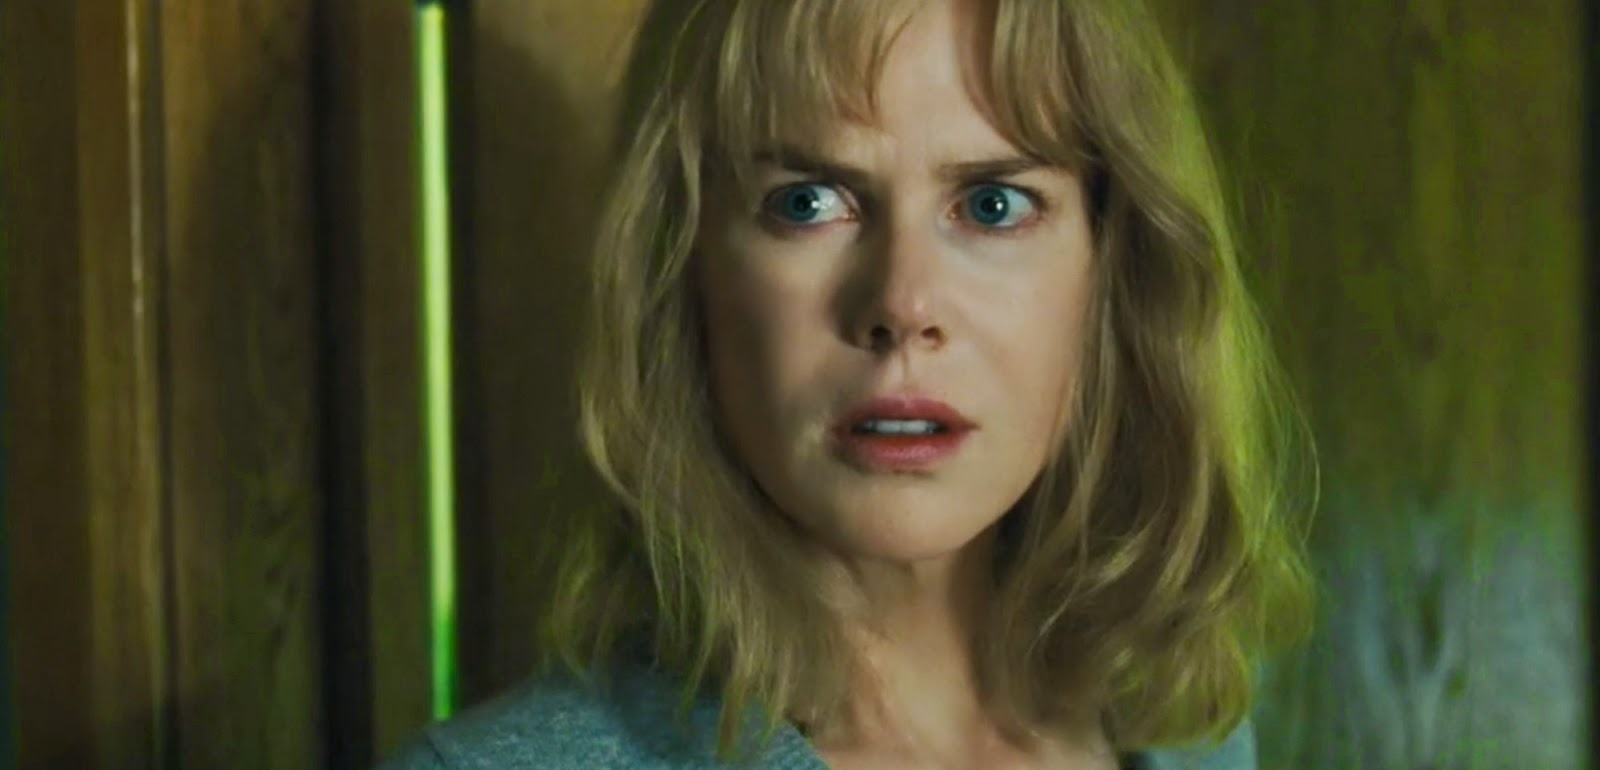 Colin Firth e Nicole Kidman no trailer do thriller psicológico Before I Go To Sleep